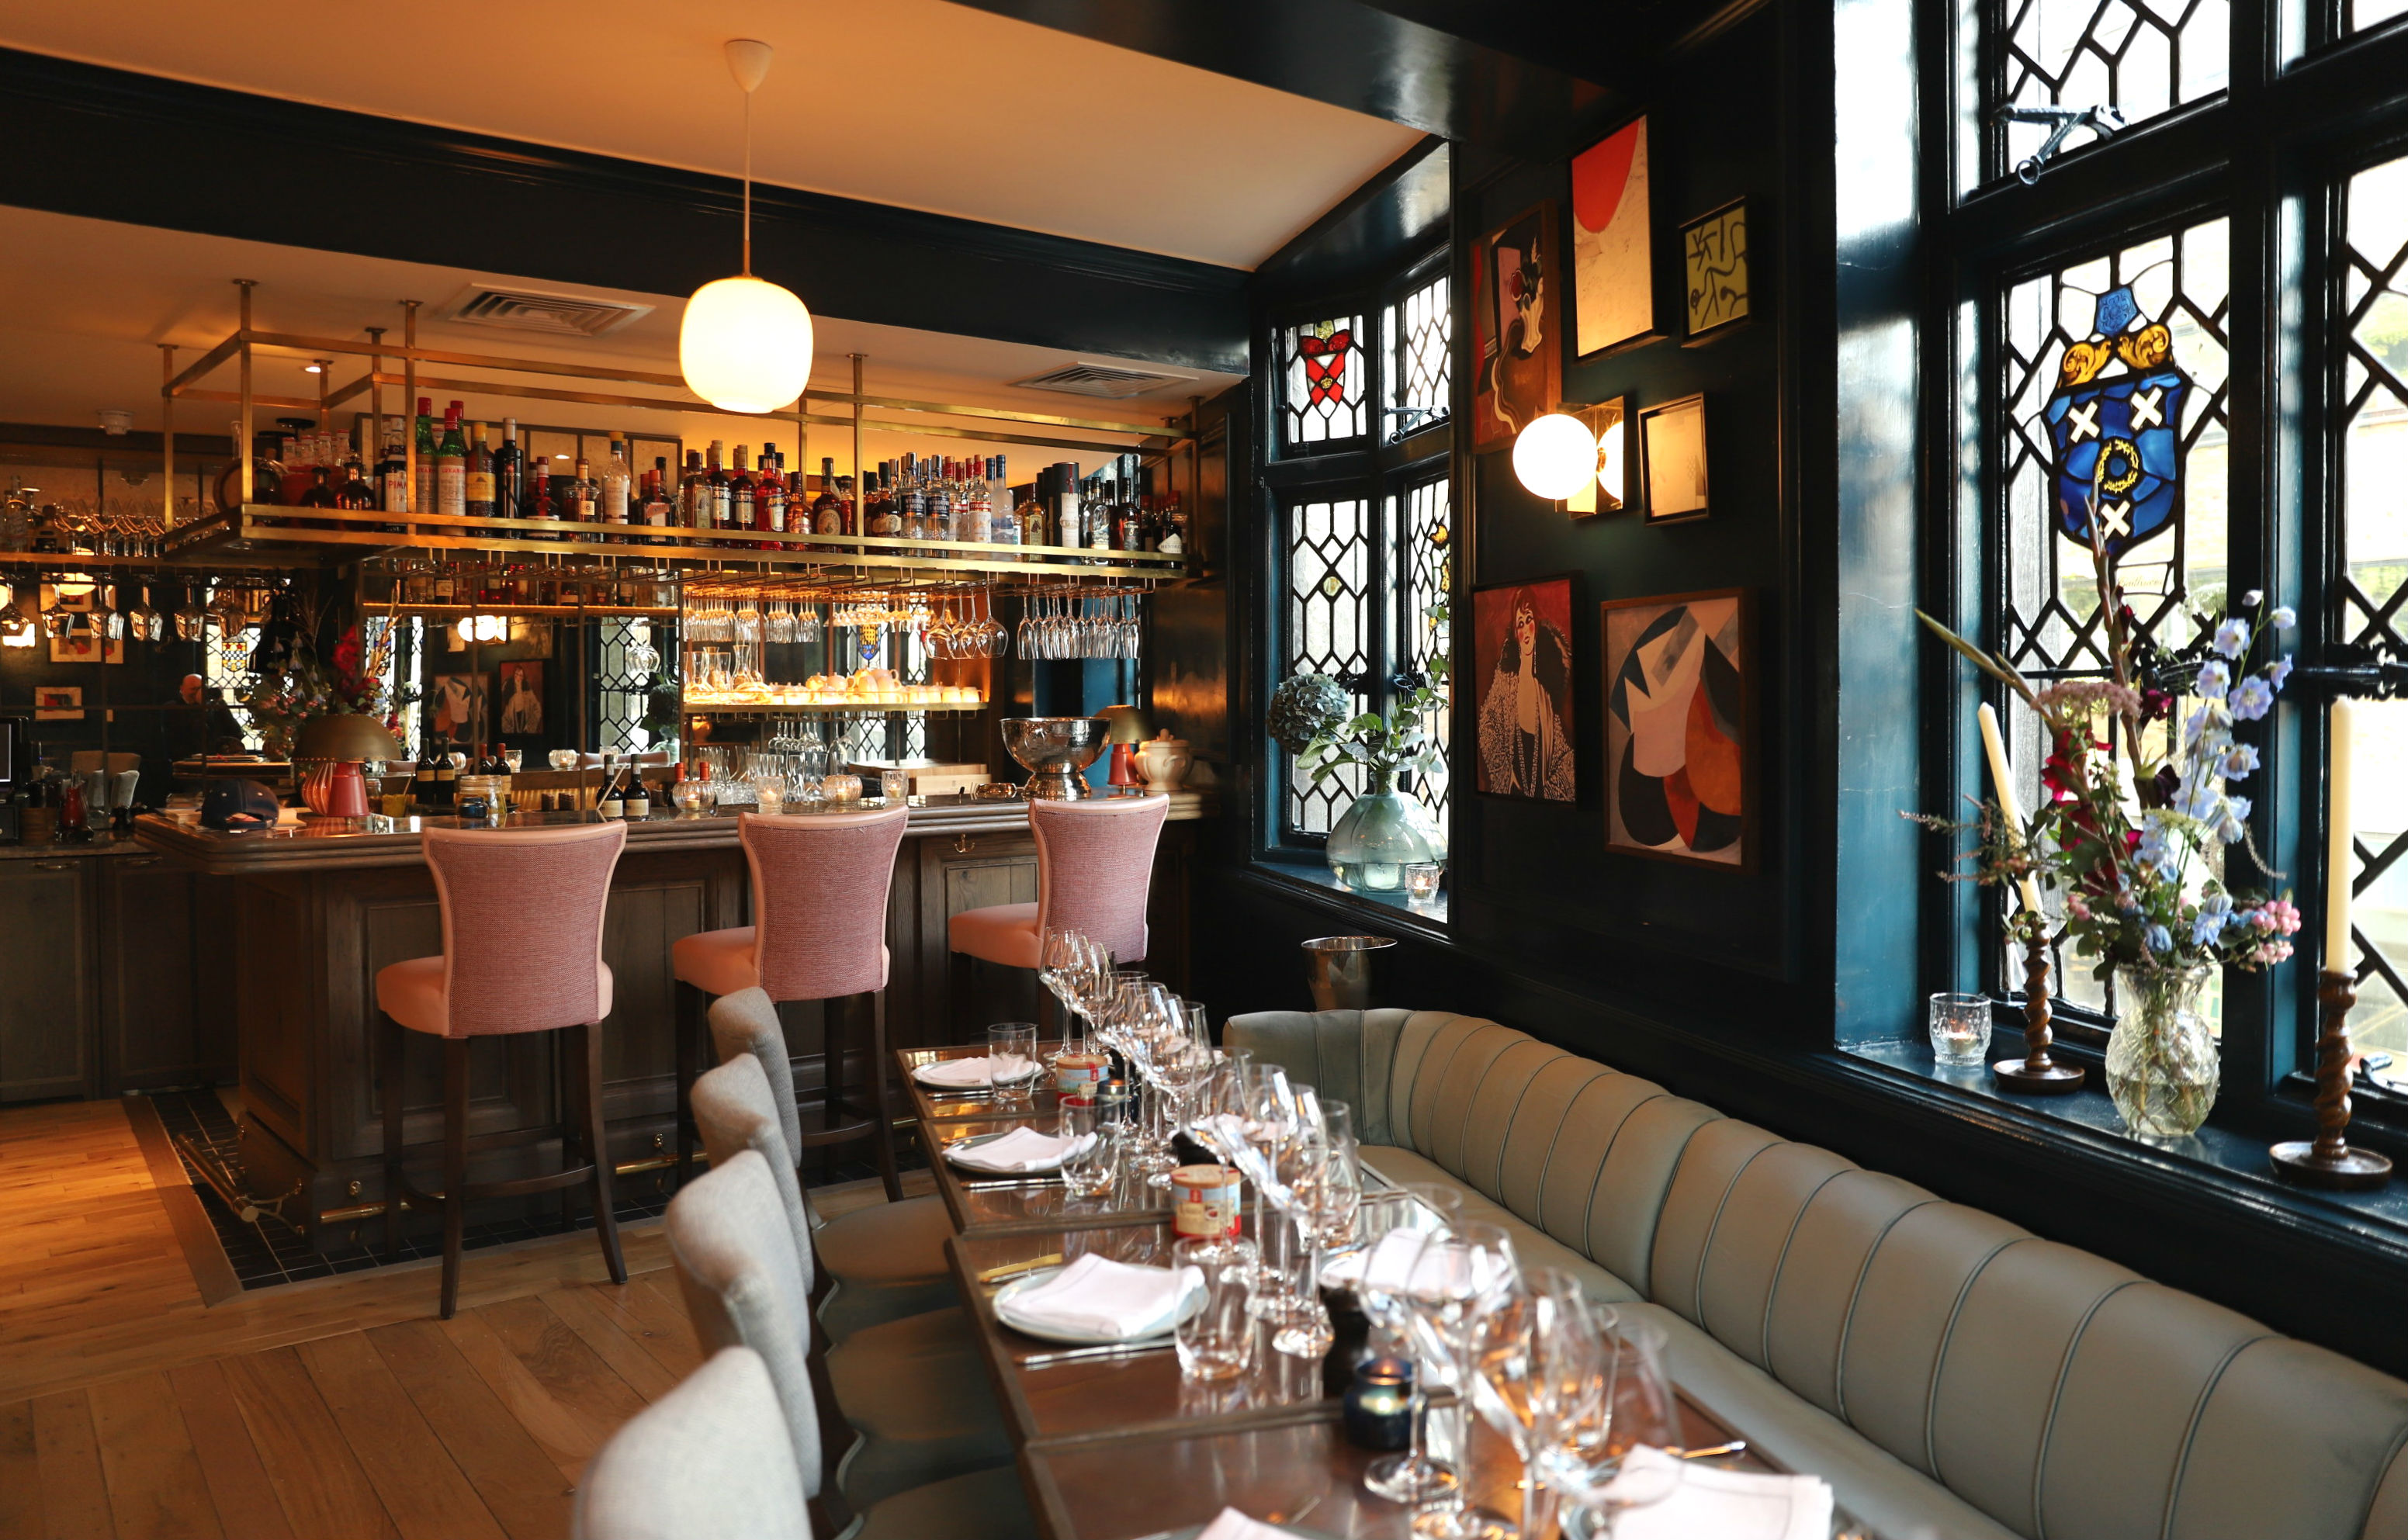 The restaurant Clarette in London